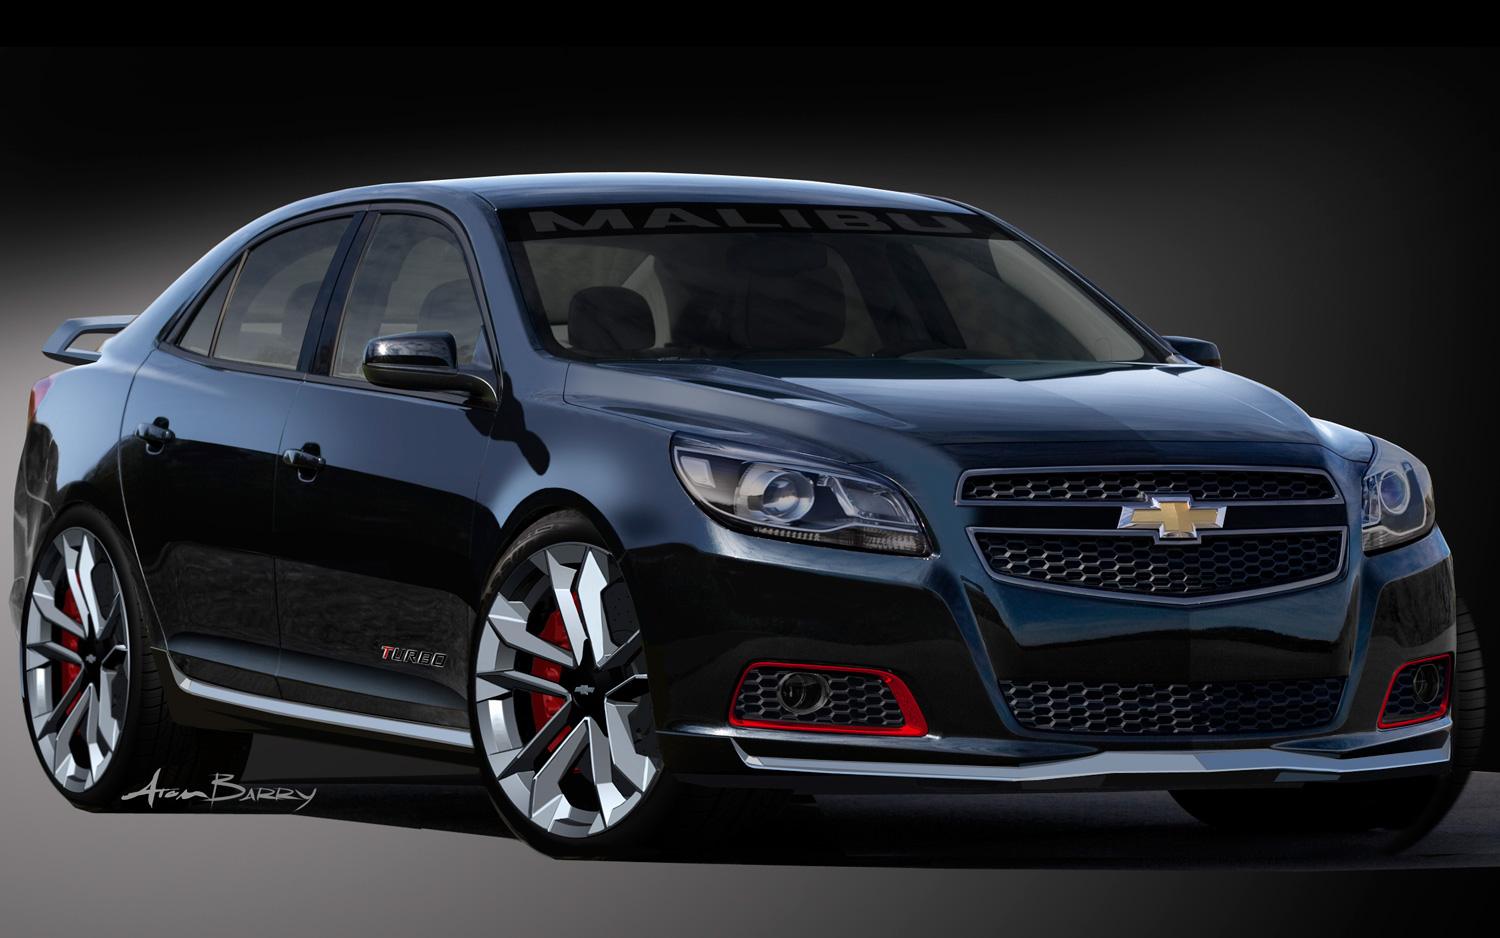 SEMA Sedans: 2013 Chevrolet Malibu Turbo and 2014 Chevrolet Impala Ready  for SEMA